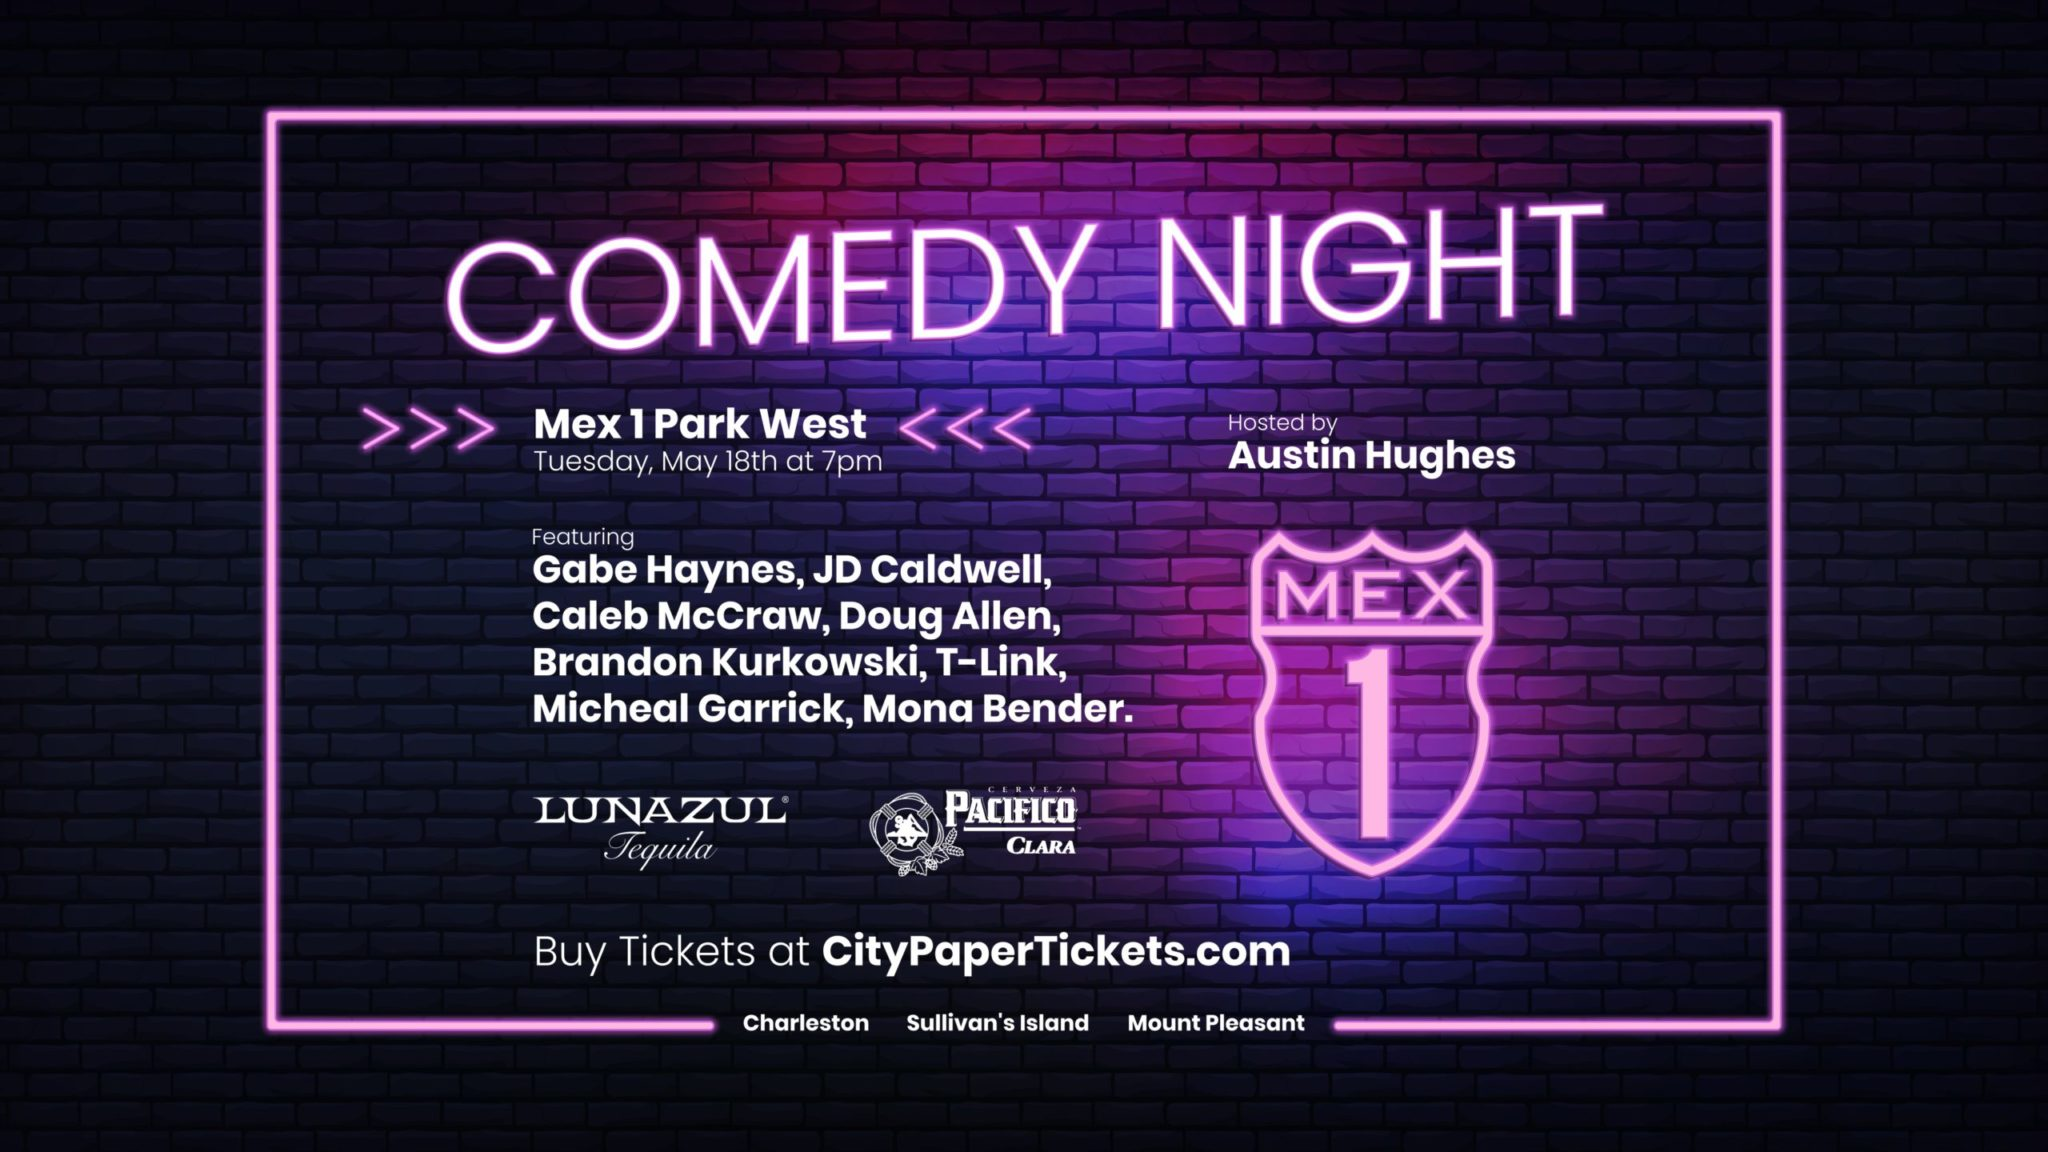 Comedy Night at Mex 1 Park West Tuesday, May 18th